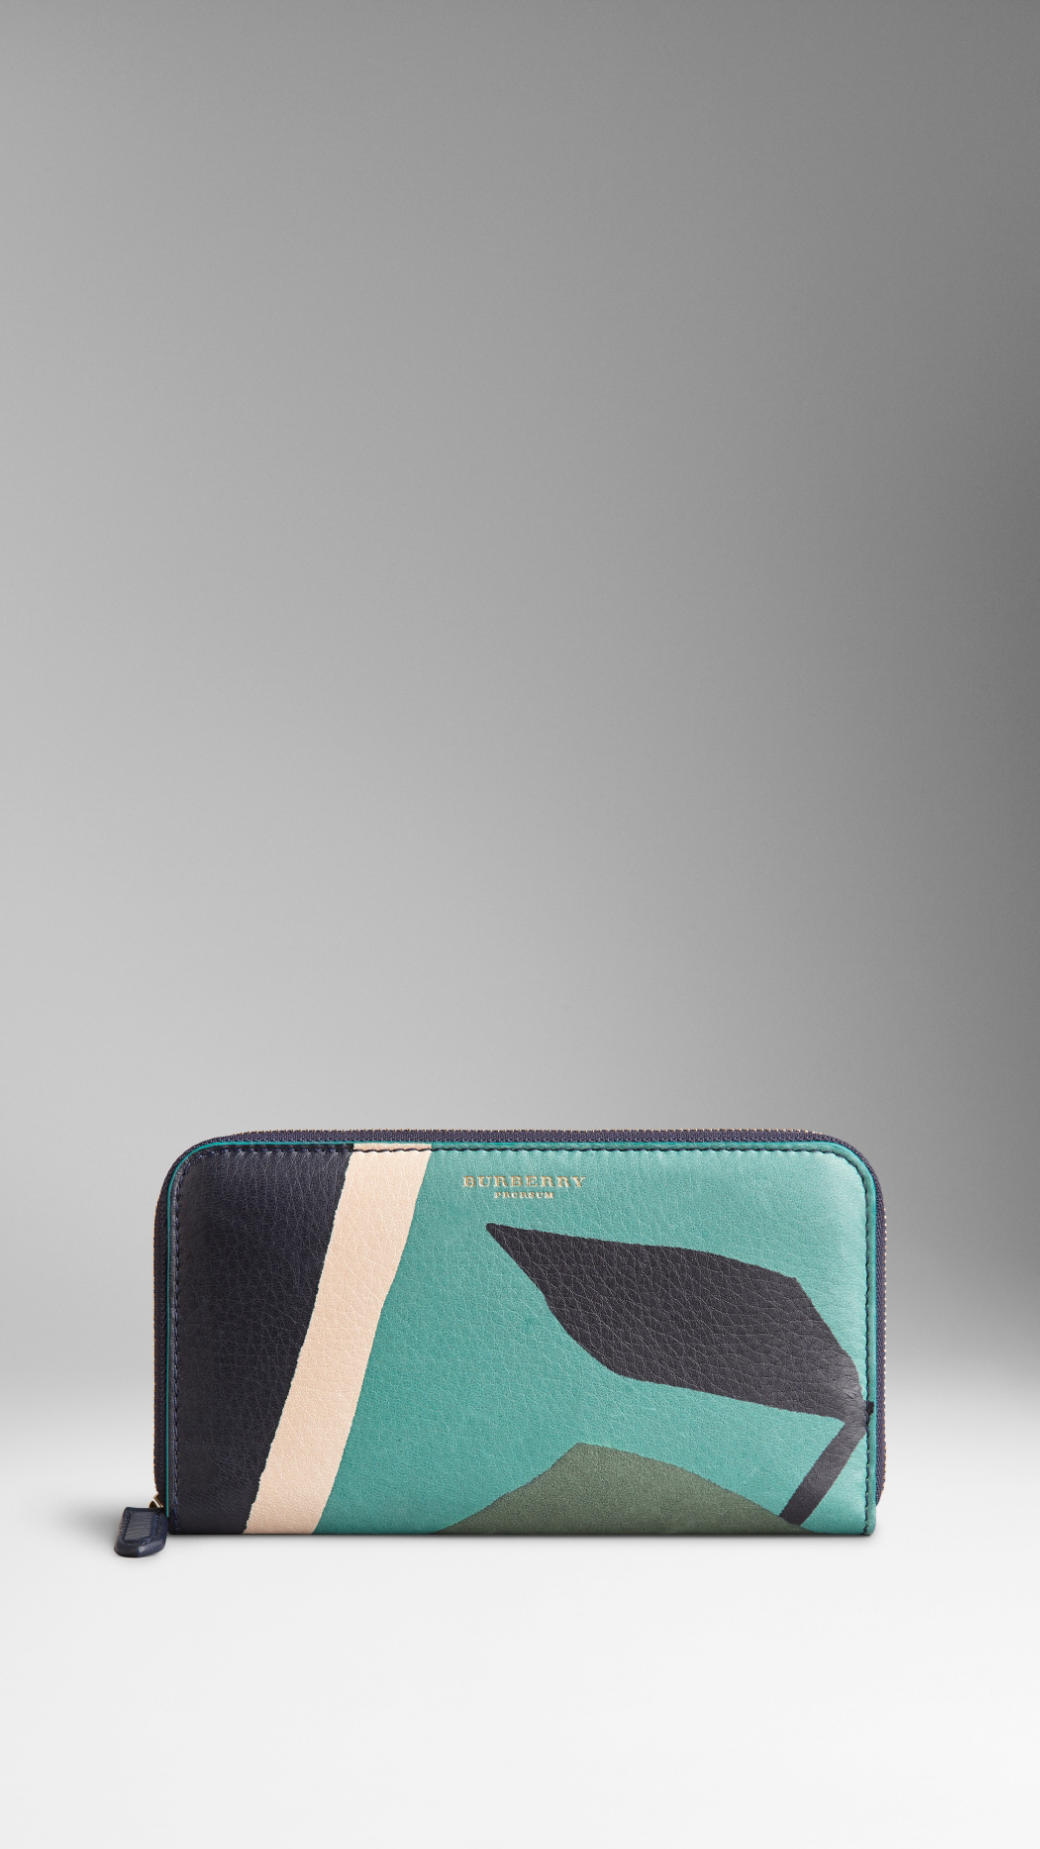 Book Cover Pictures Zip : Burberry book cover print leather ziparound wallet in gray